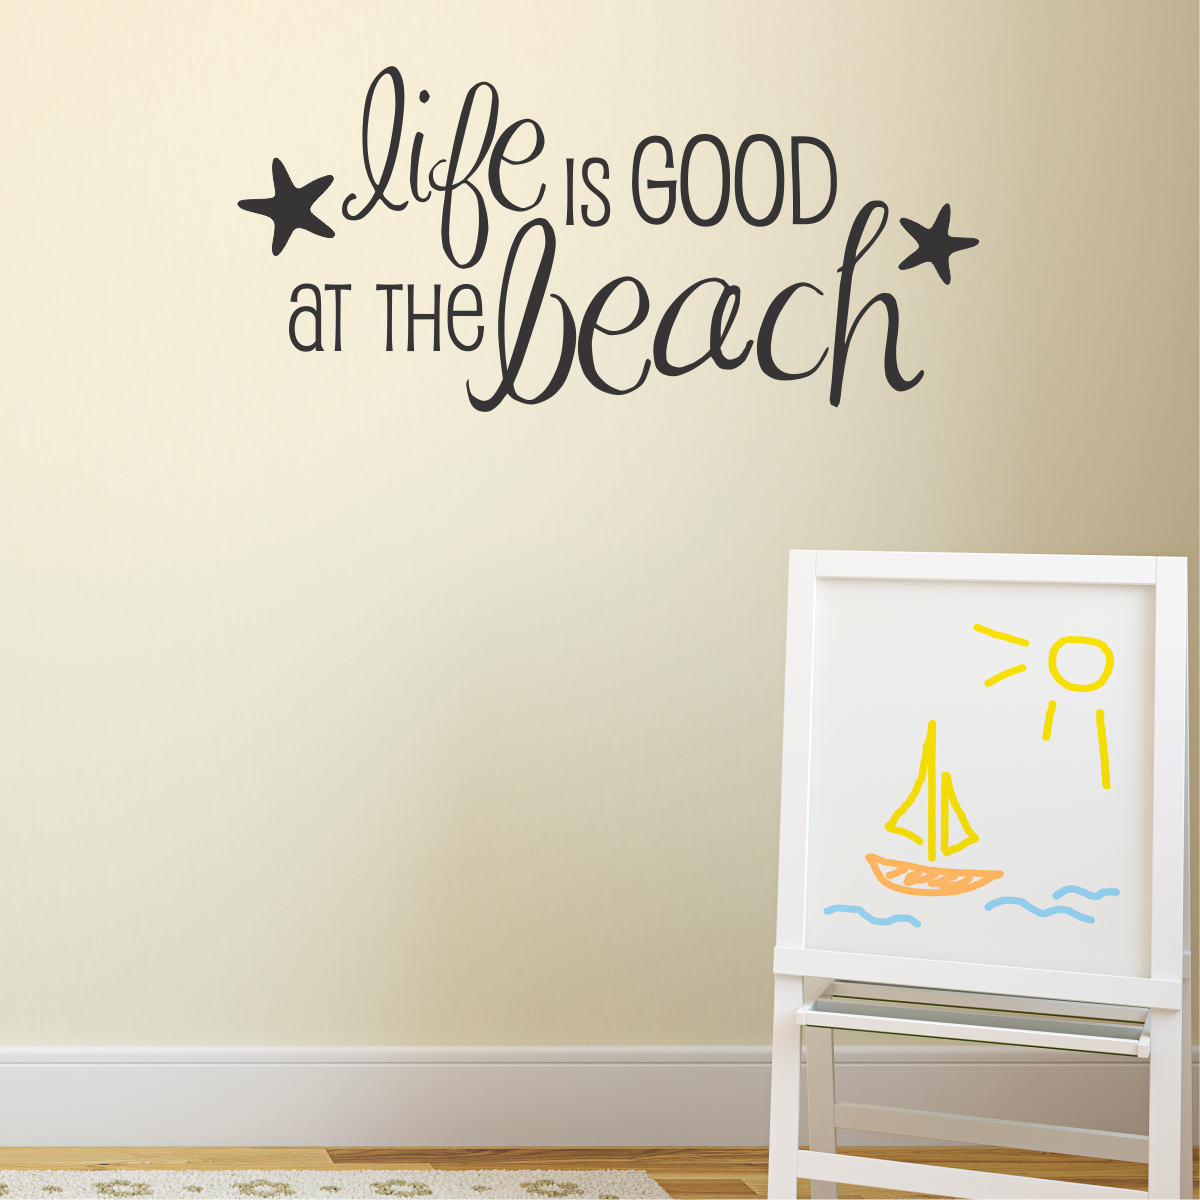 life is good at the beach wall quotes u2122 decal